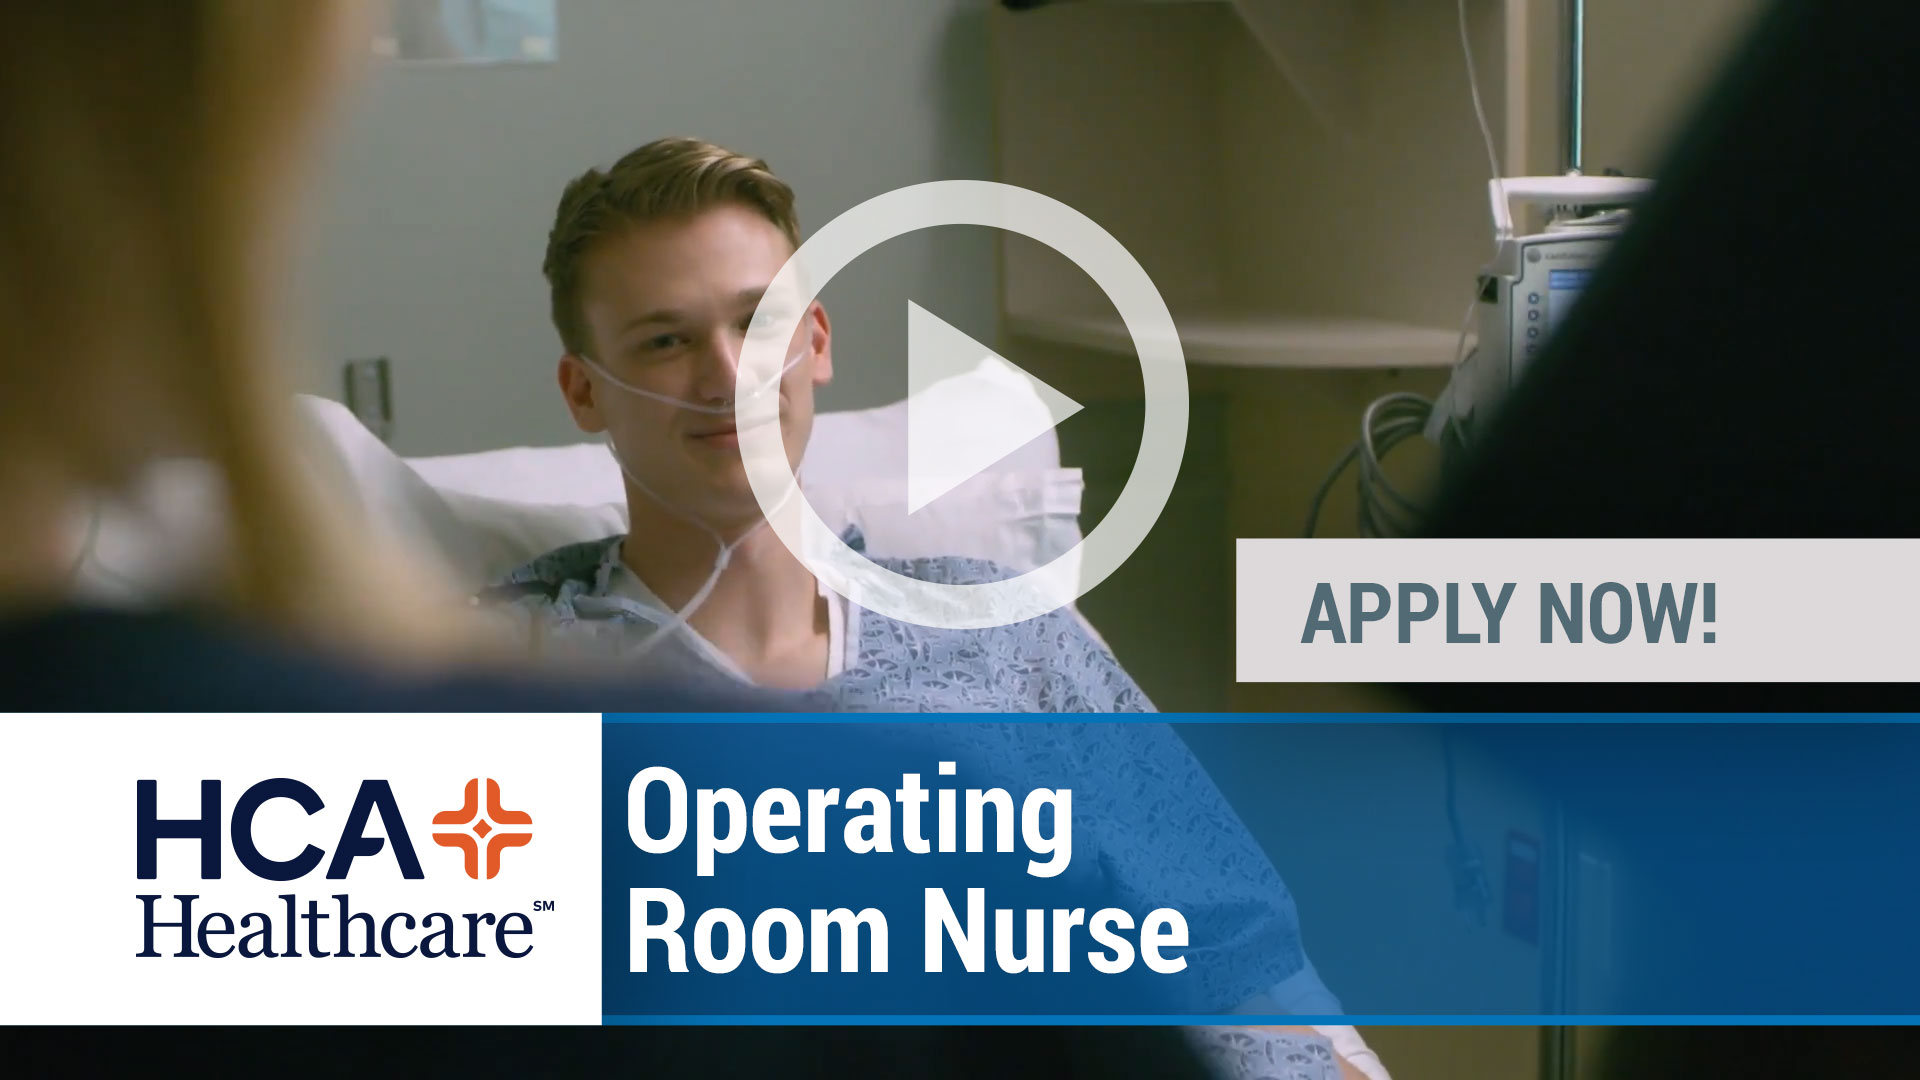 Watch our careers video for available job opening Operating Room Nurse in Denver, Colorado